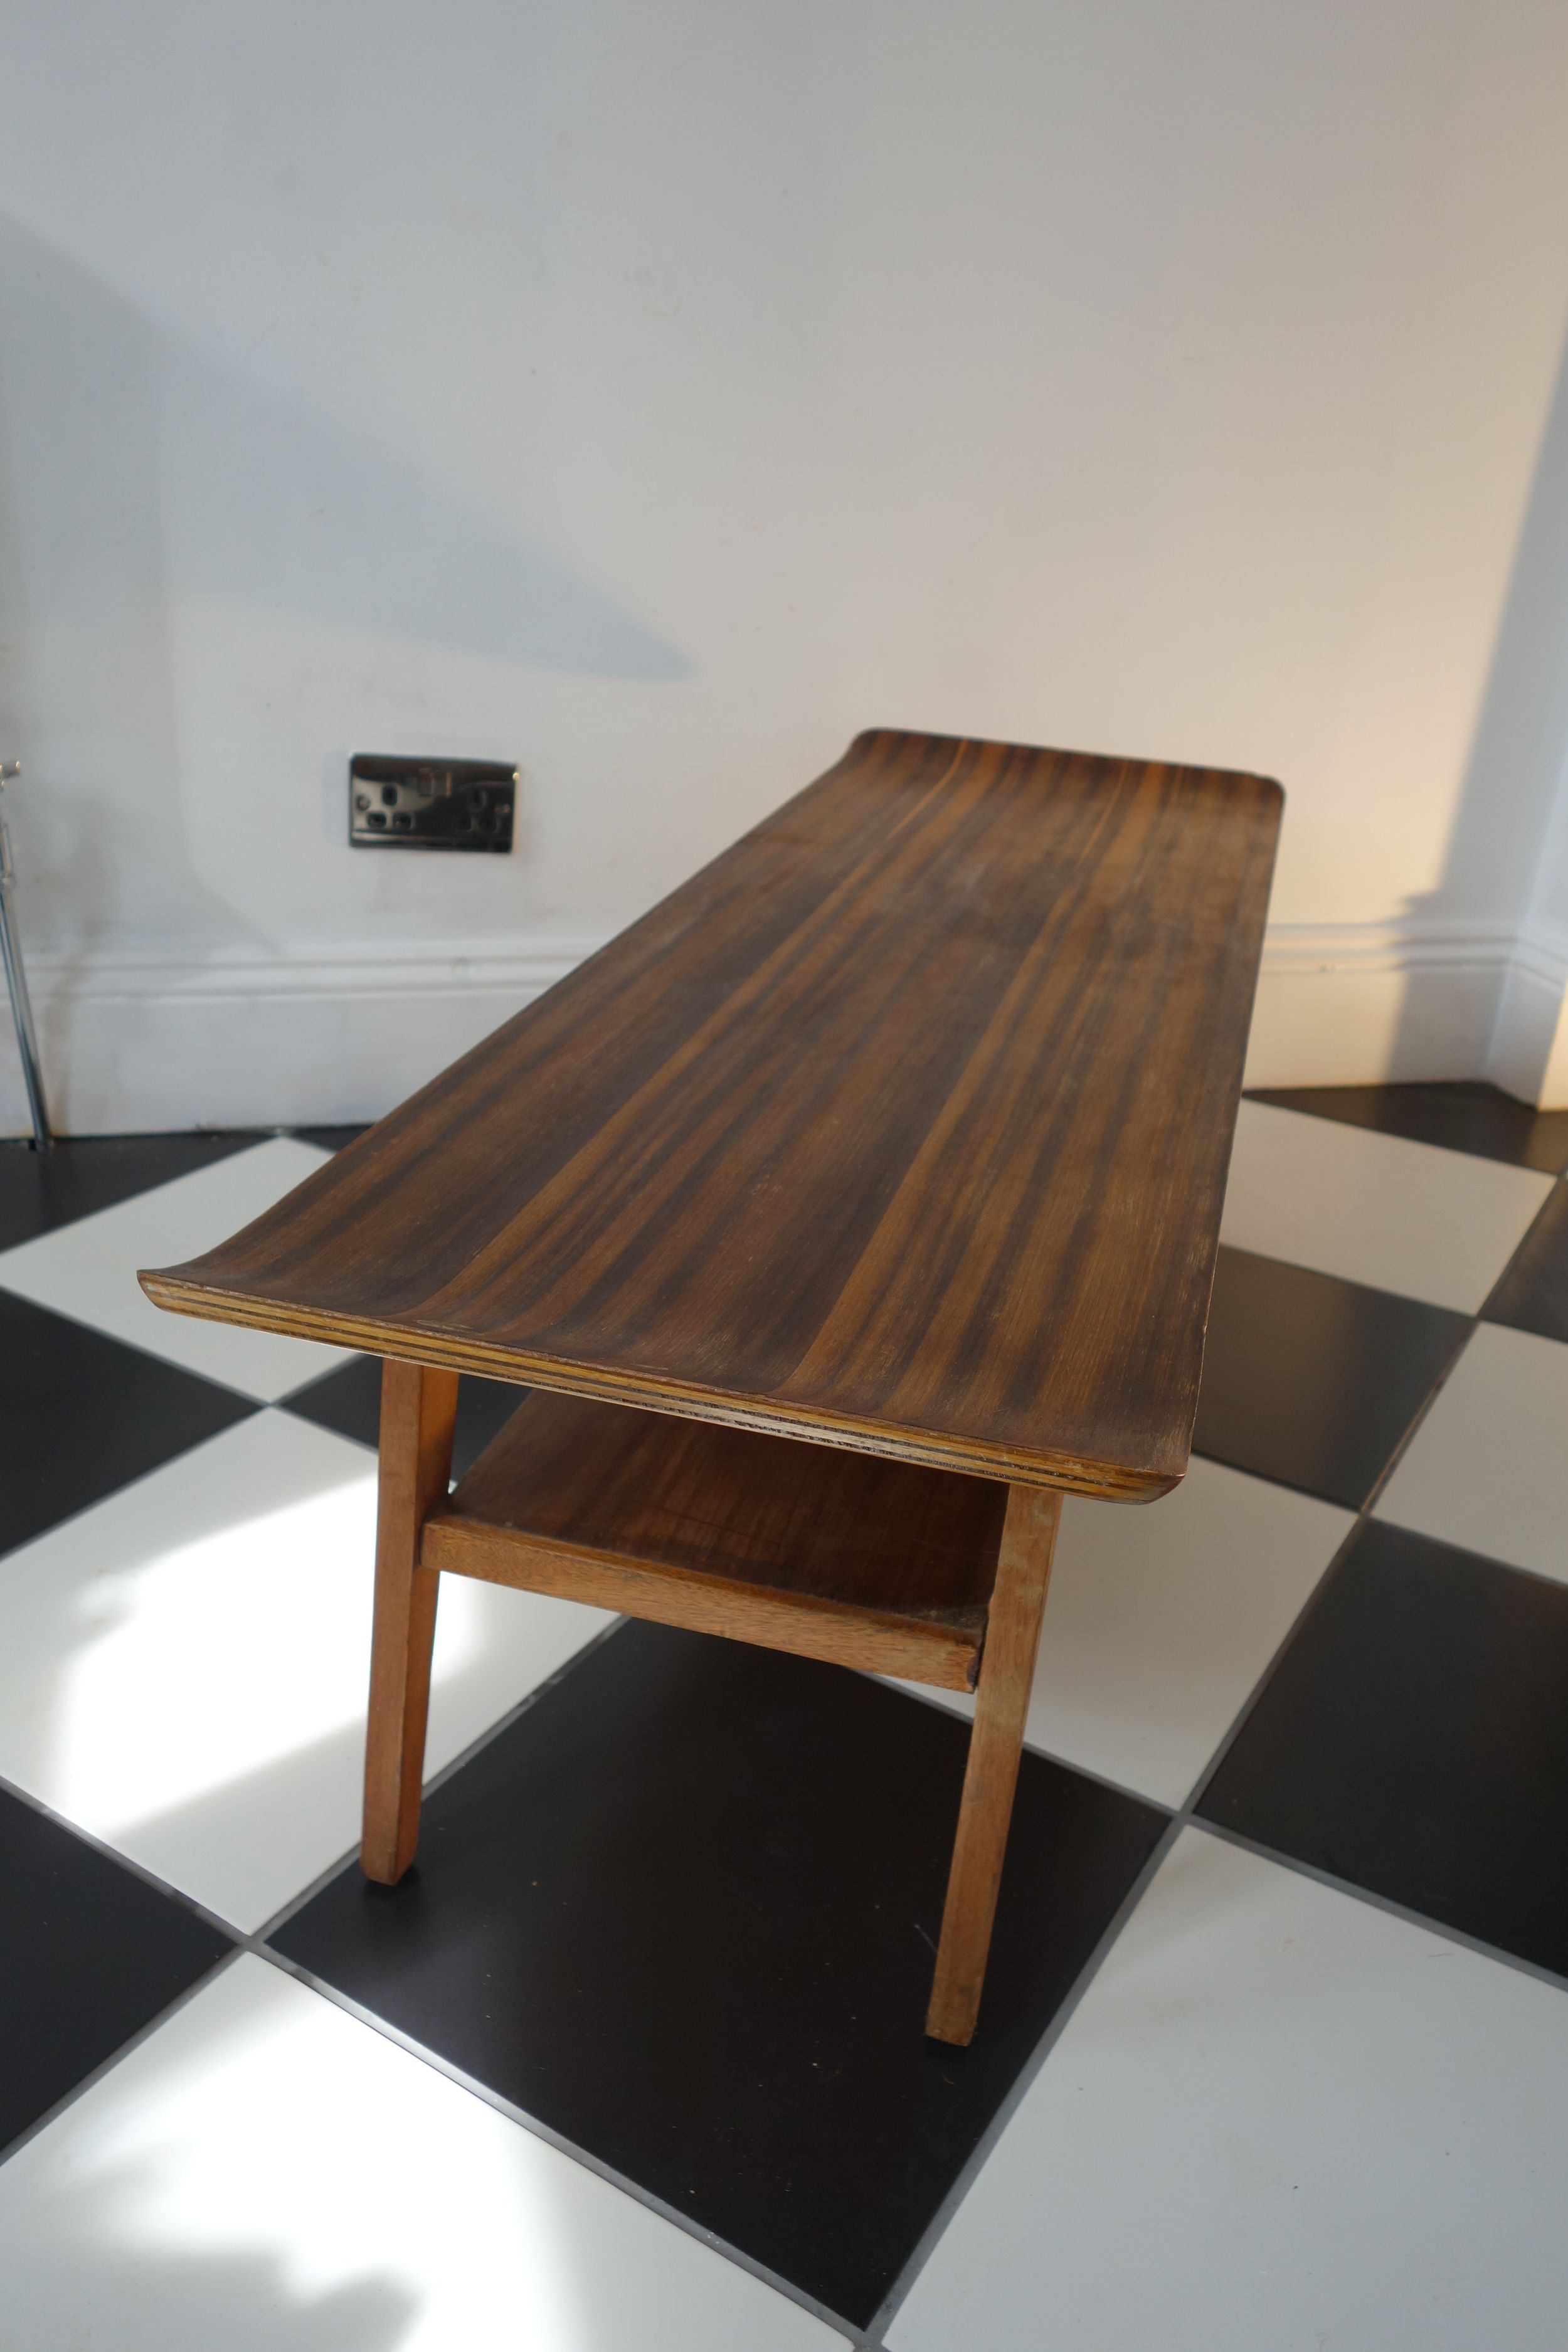 Retro Vintage Mid Century Myers Sleigh Coffee Table With Shelf 1960s 70s